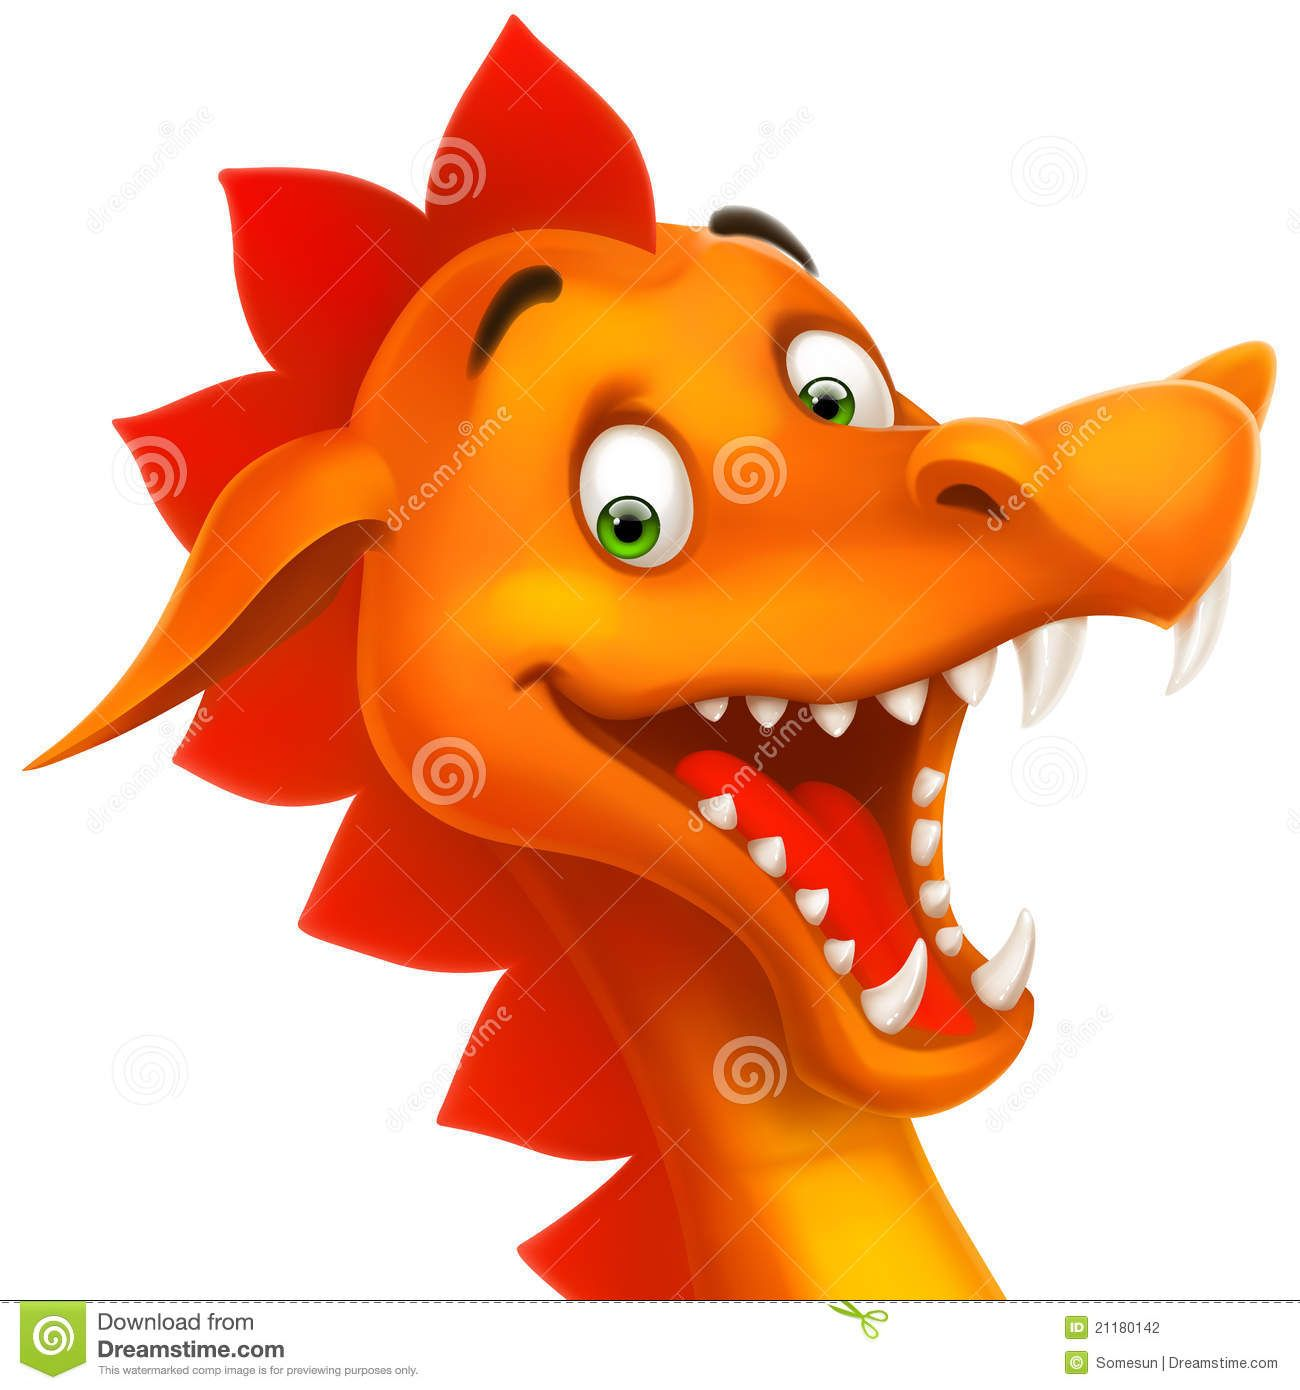 Vector Cute Smiling Happy Dragon As Cartoon Or Toy Stock ...